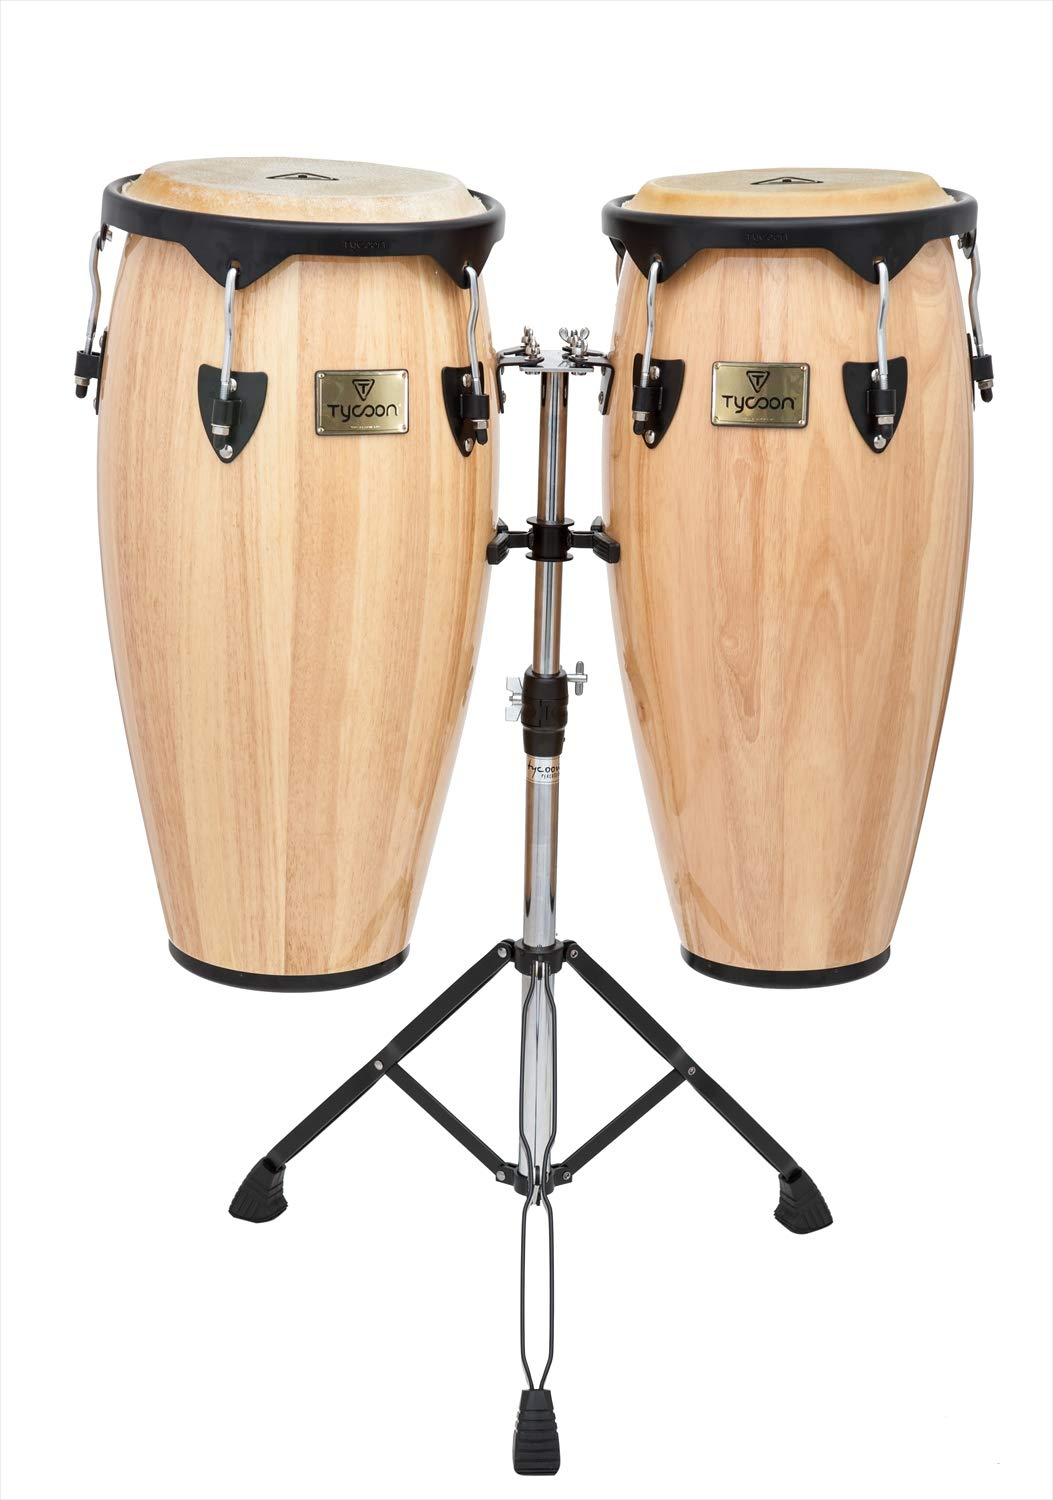 Tycoon Percussion 10 Inch & 11 Inch Congas Natural Finish With Double Stand by Tycoon Percussion